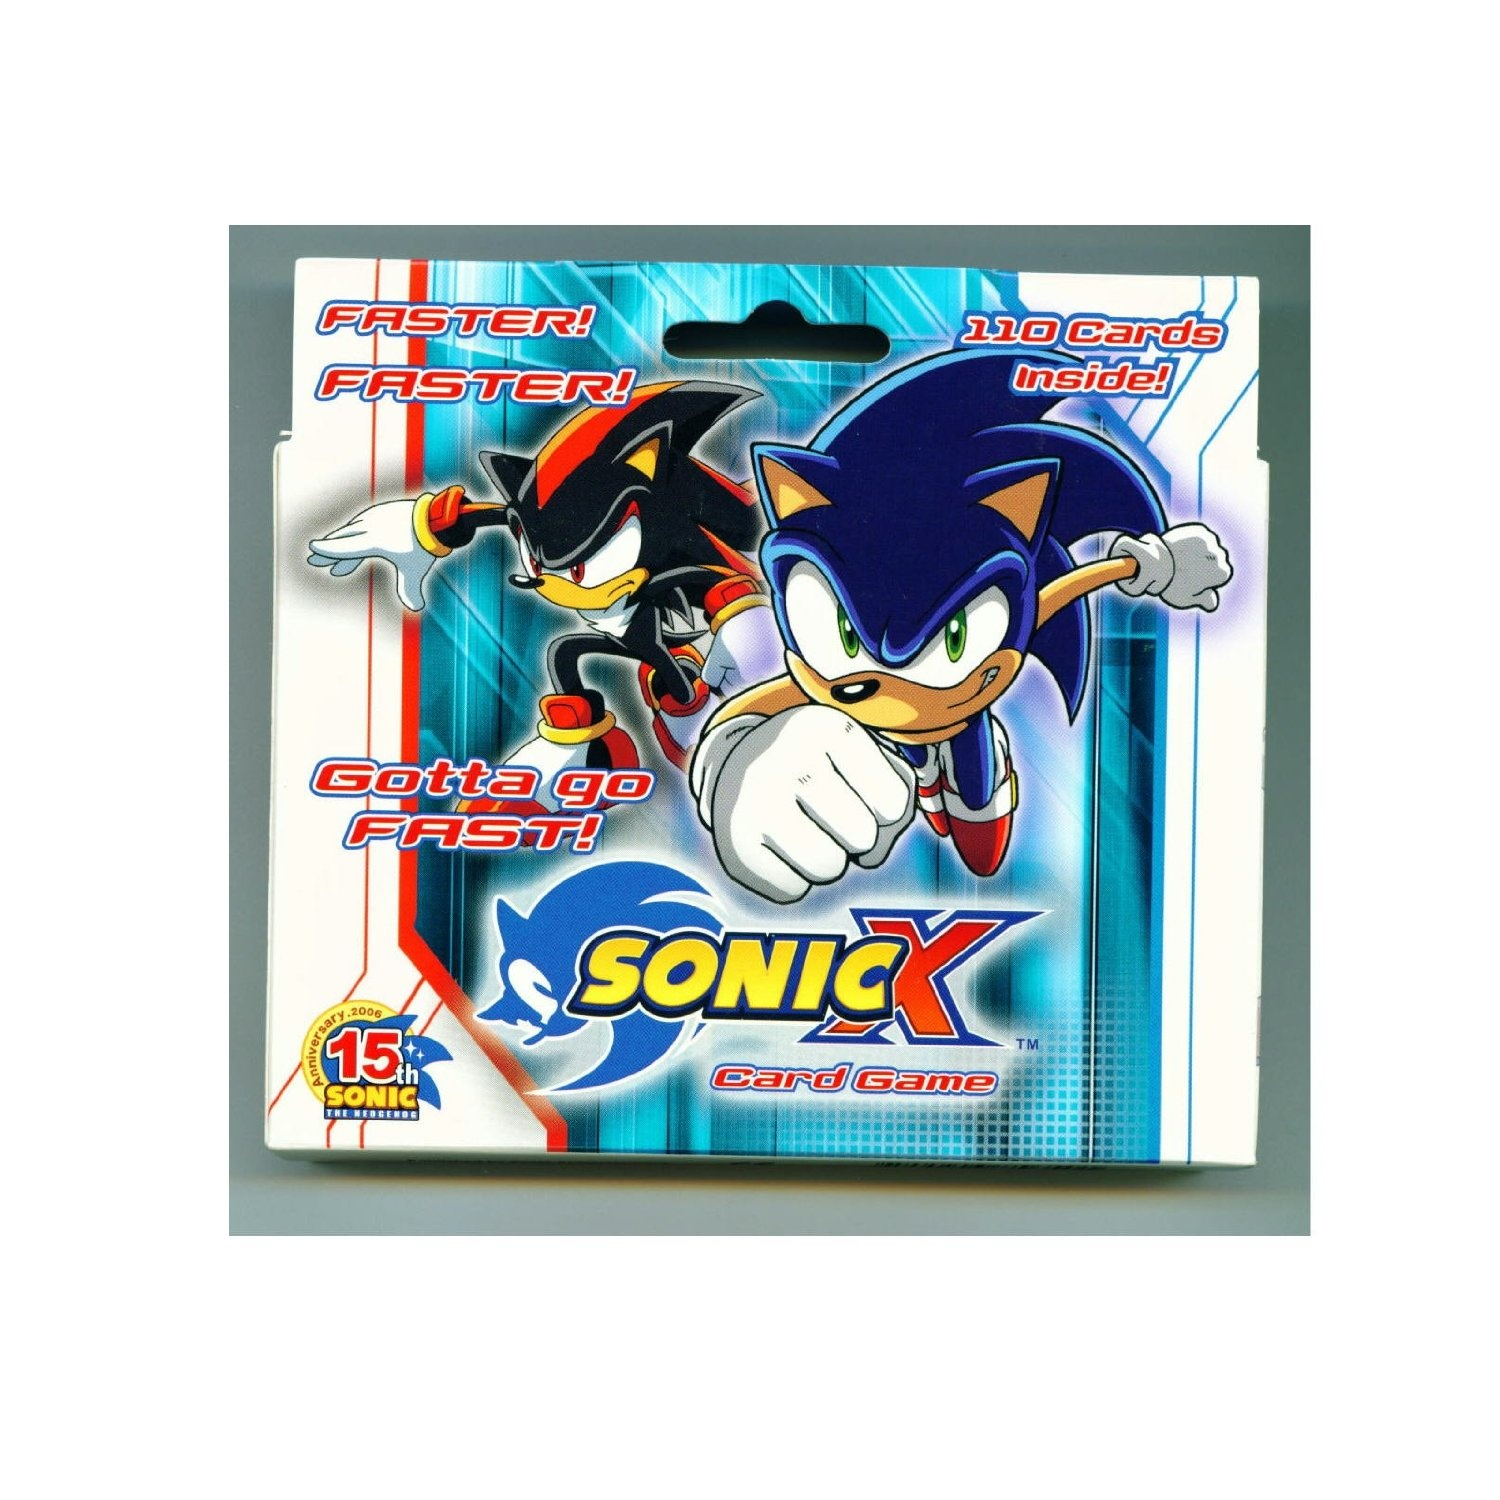 Sonic X Card Game Starter Deck By Jazwares Shop Online For Toys In The United States